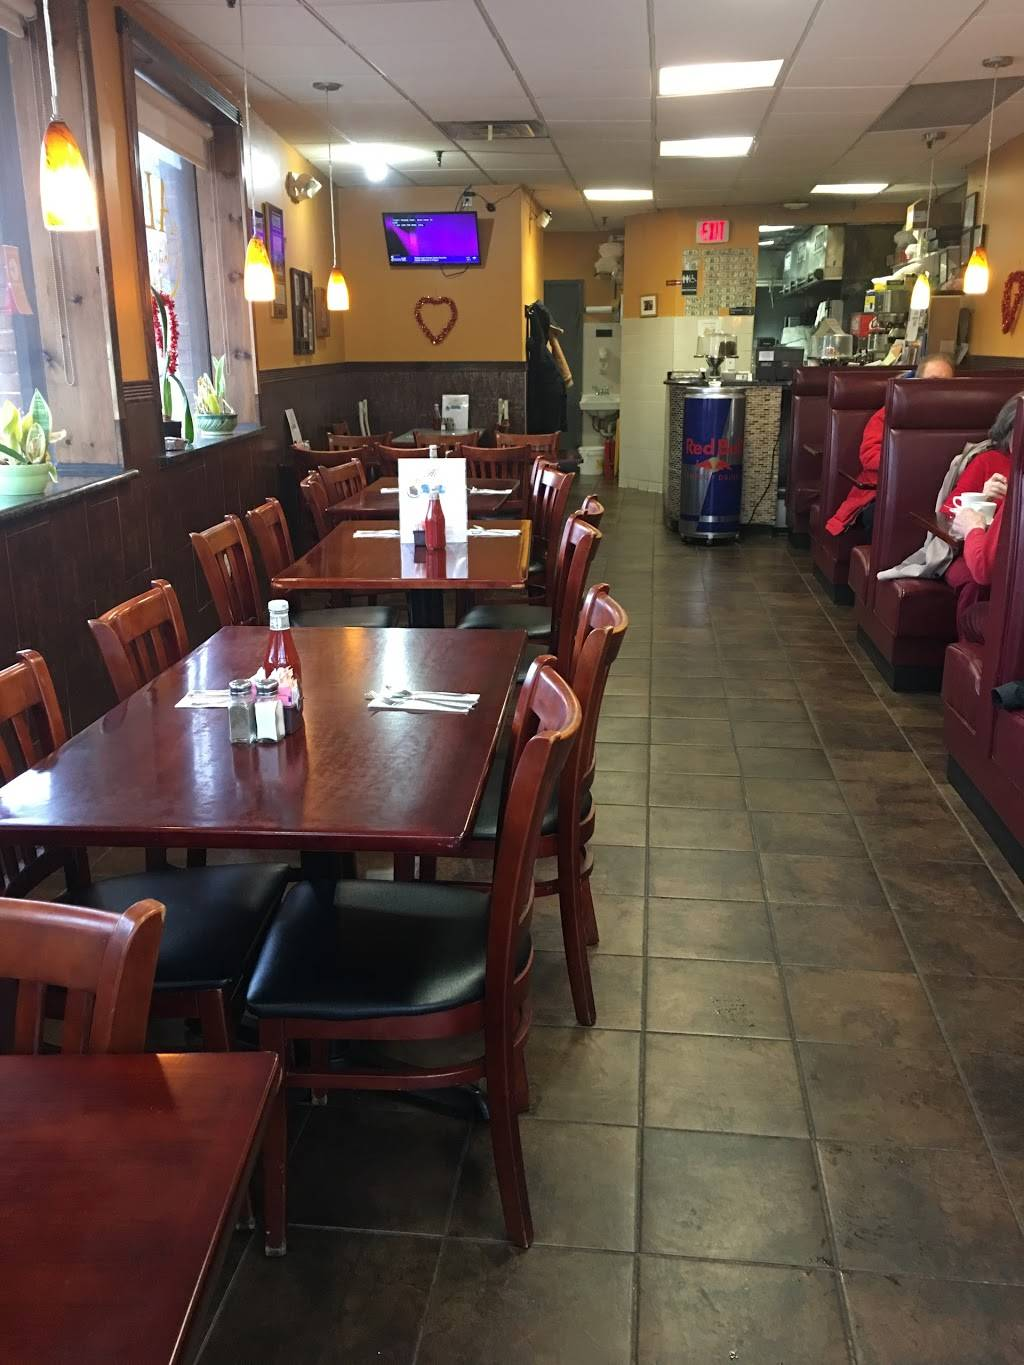 Als Charcoal Pit | meal delivery | 540 Cedar Ln, Teaneck, NJ 07666, USA | 2015307786 OR +1 201-530-7786